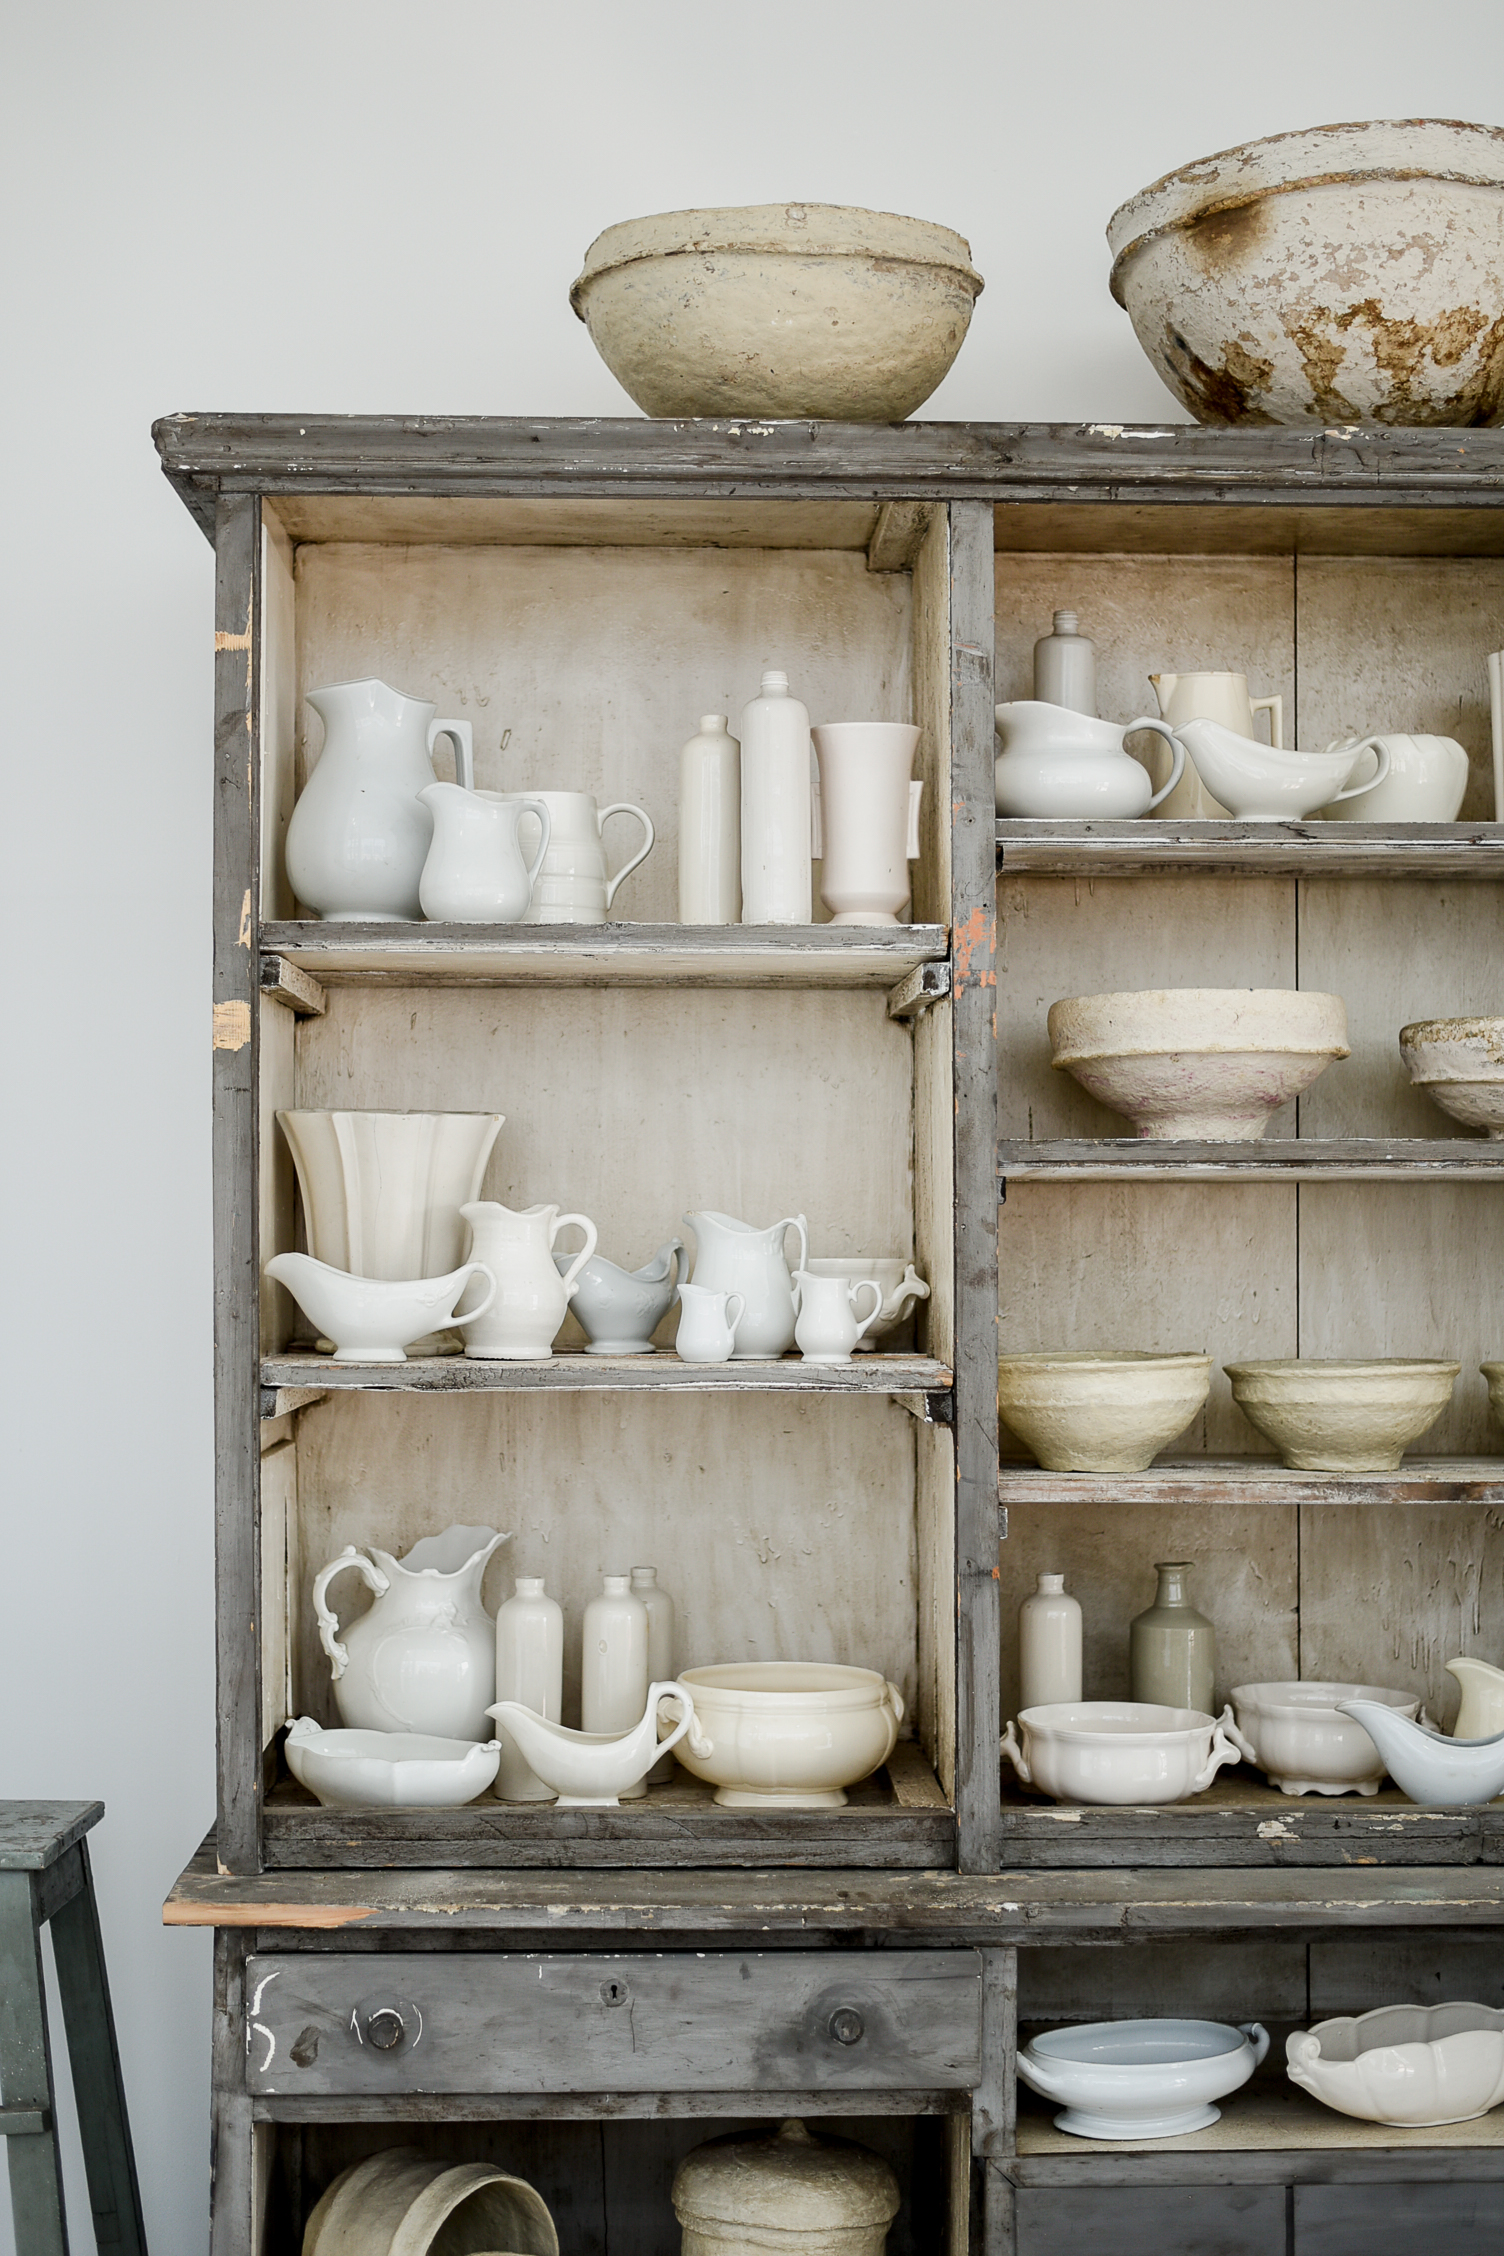 Found Vintage Rentals in California - vintage French goods for events & weddings | boxwoodavenue.com